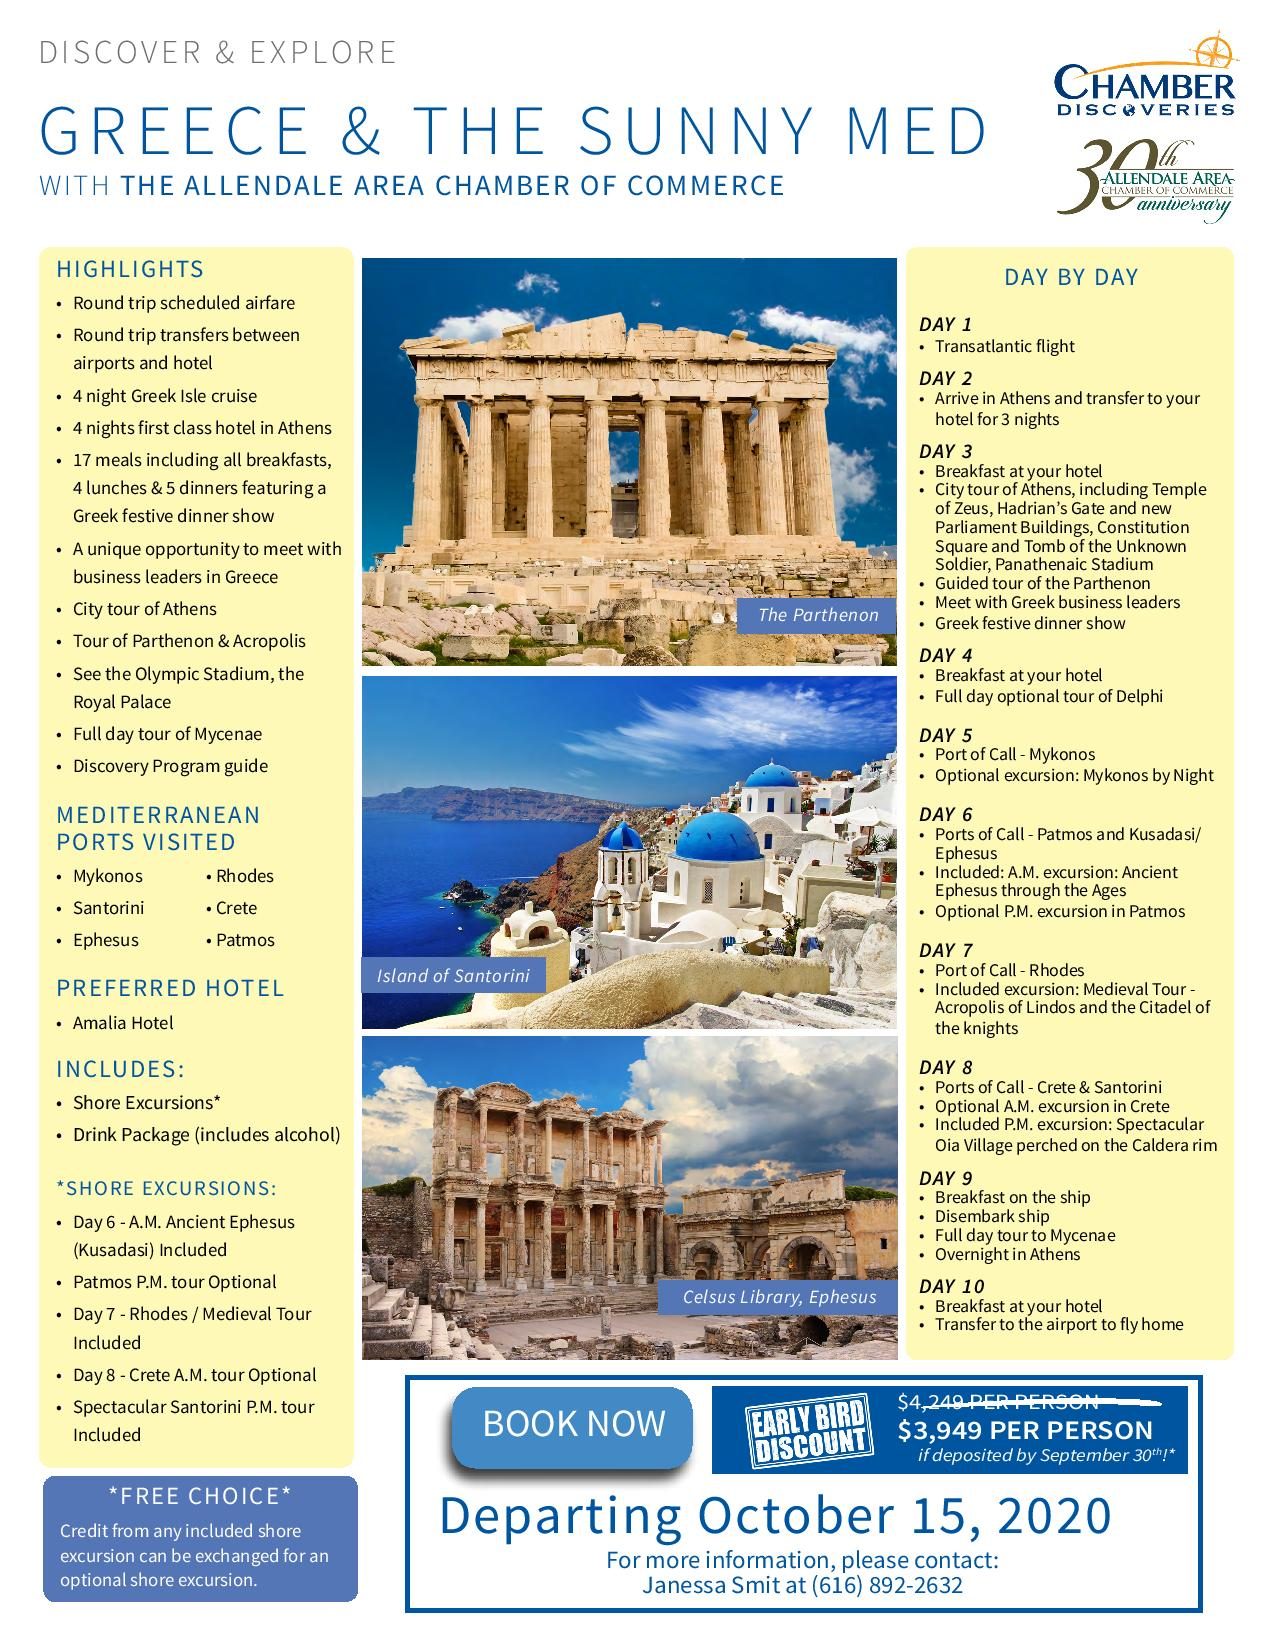 CD---Greece---Quick-Flyer---Allendale---2020-EB-page-001.jpg